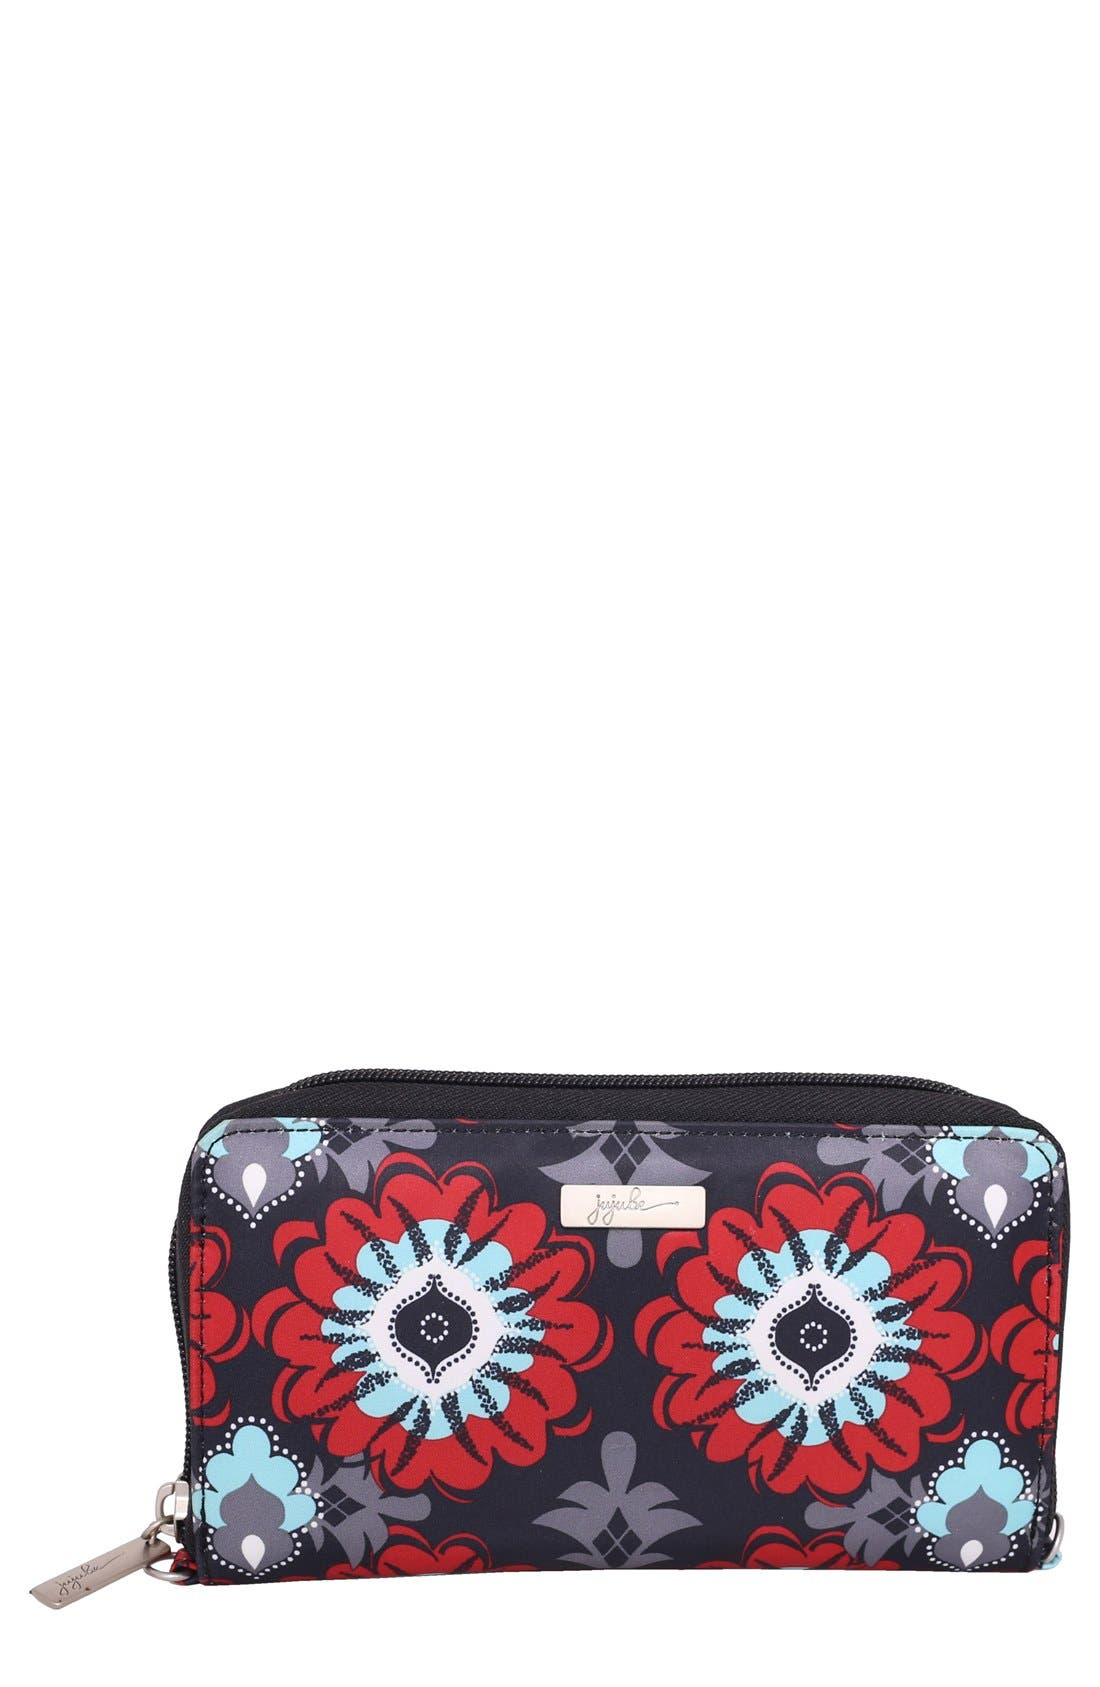 Be Spendy Clutch Wallet,                             Main thumbnail 1, color,                             006